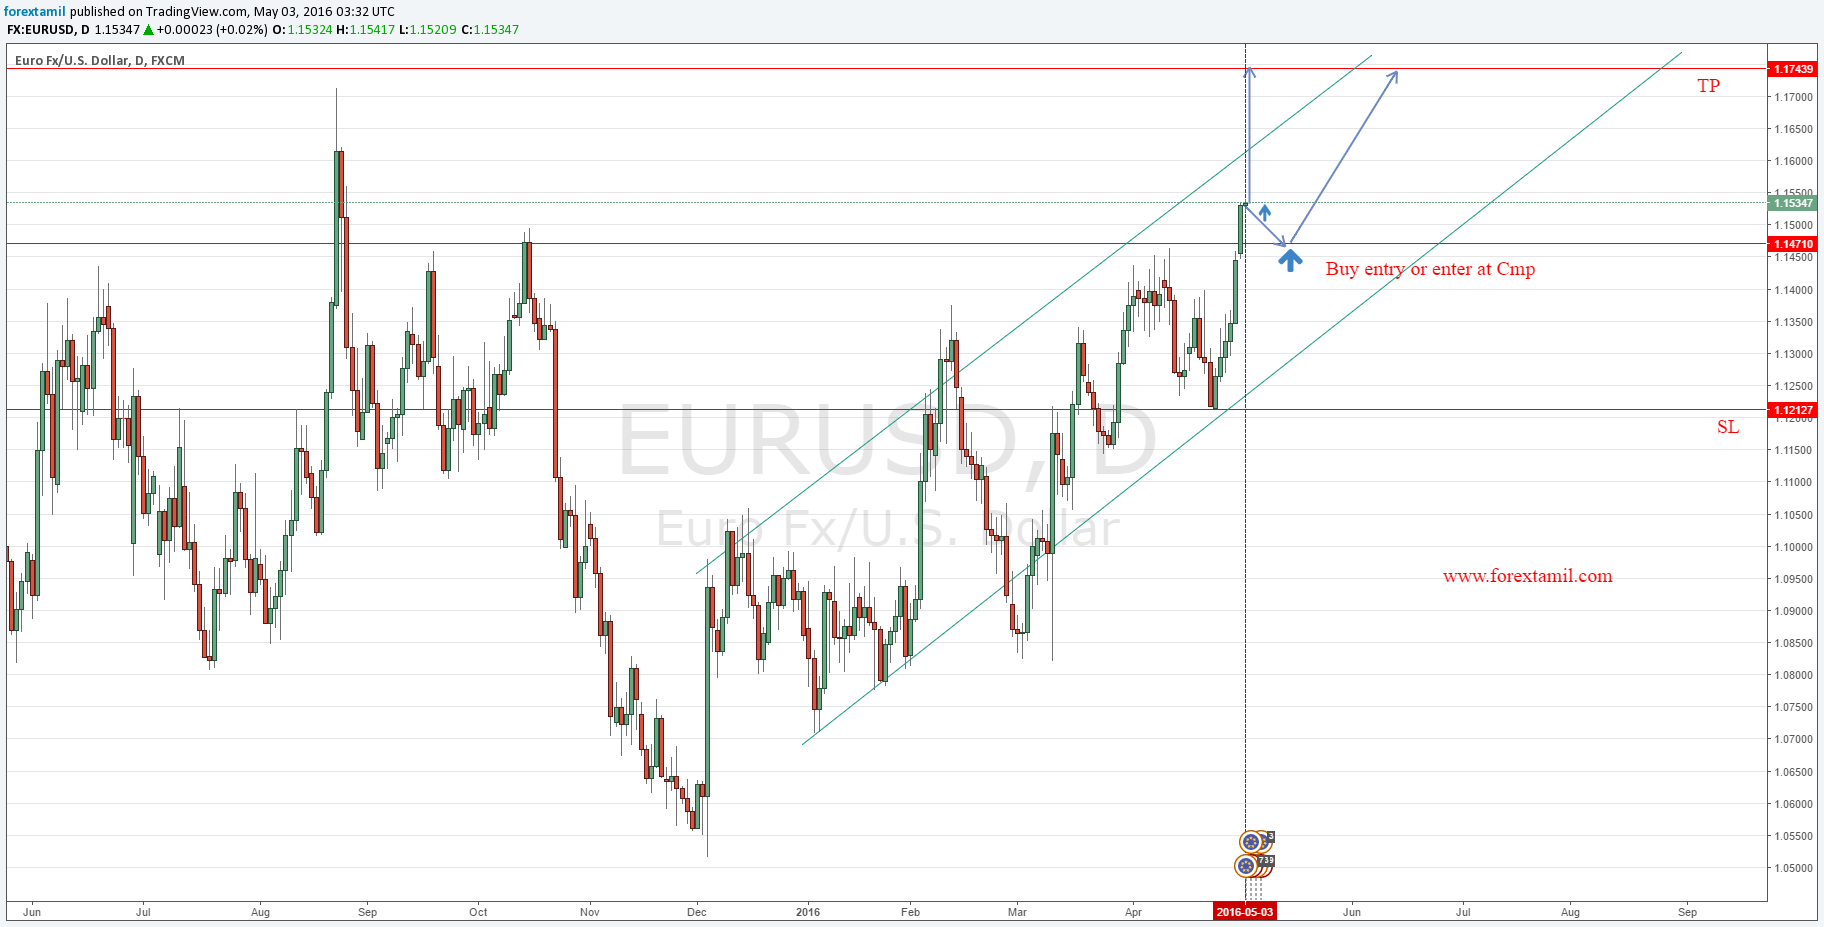 BUY EUR/USD|Professional forex,free trading videos,Forex tradind easy,Fx trading easy,Fx market news,Forex trade news